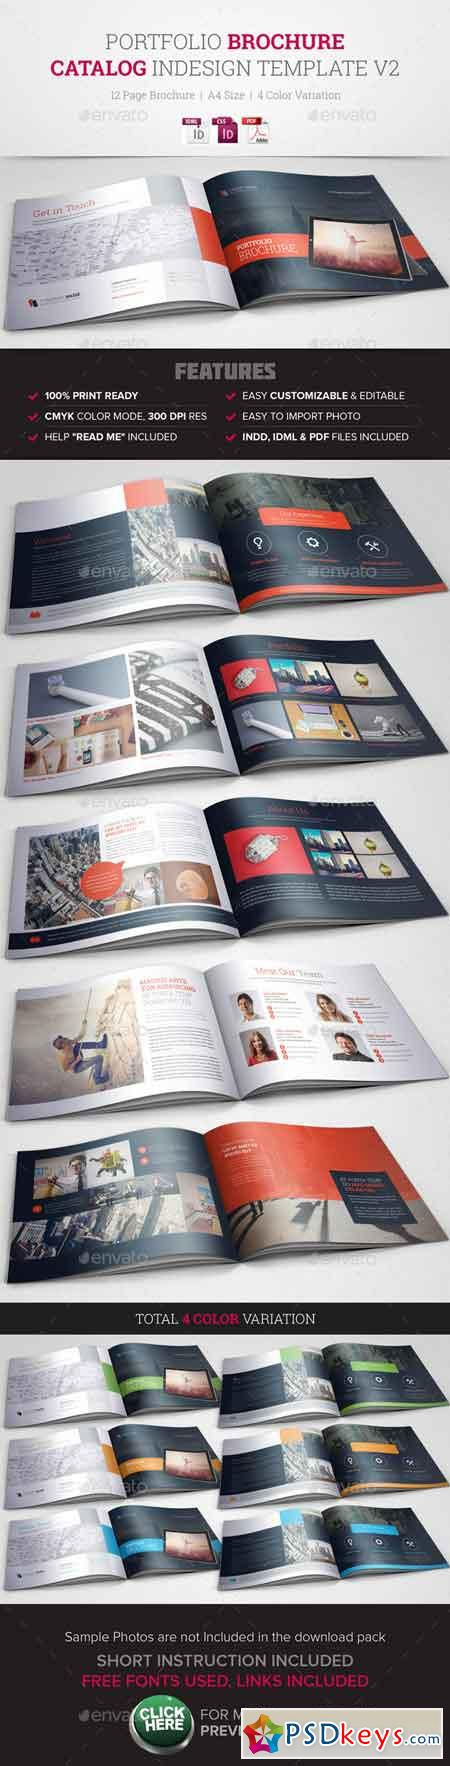 Portfolio Brochure InDesign Template v2 10491396 » Free Download ...